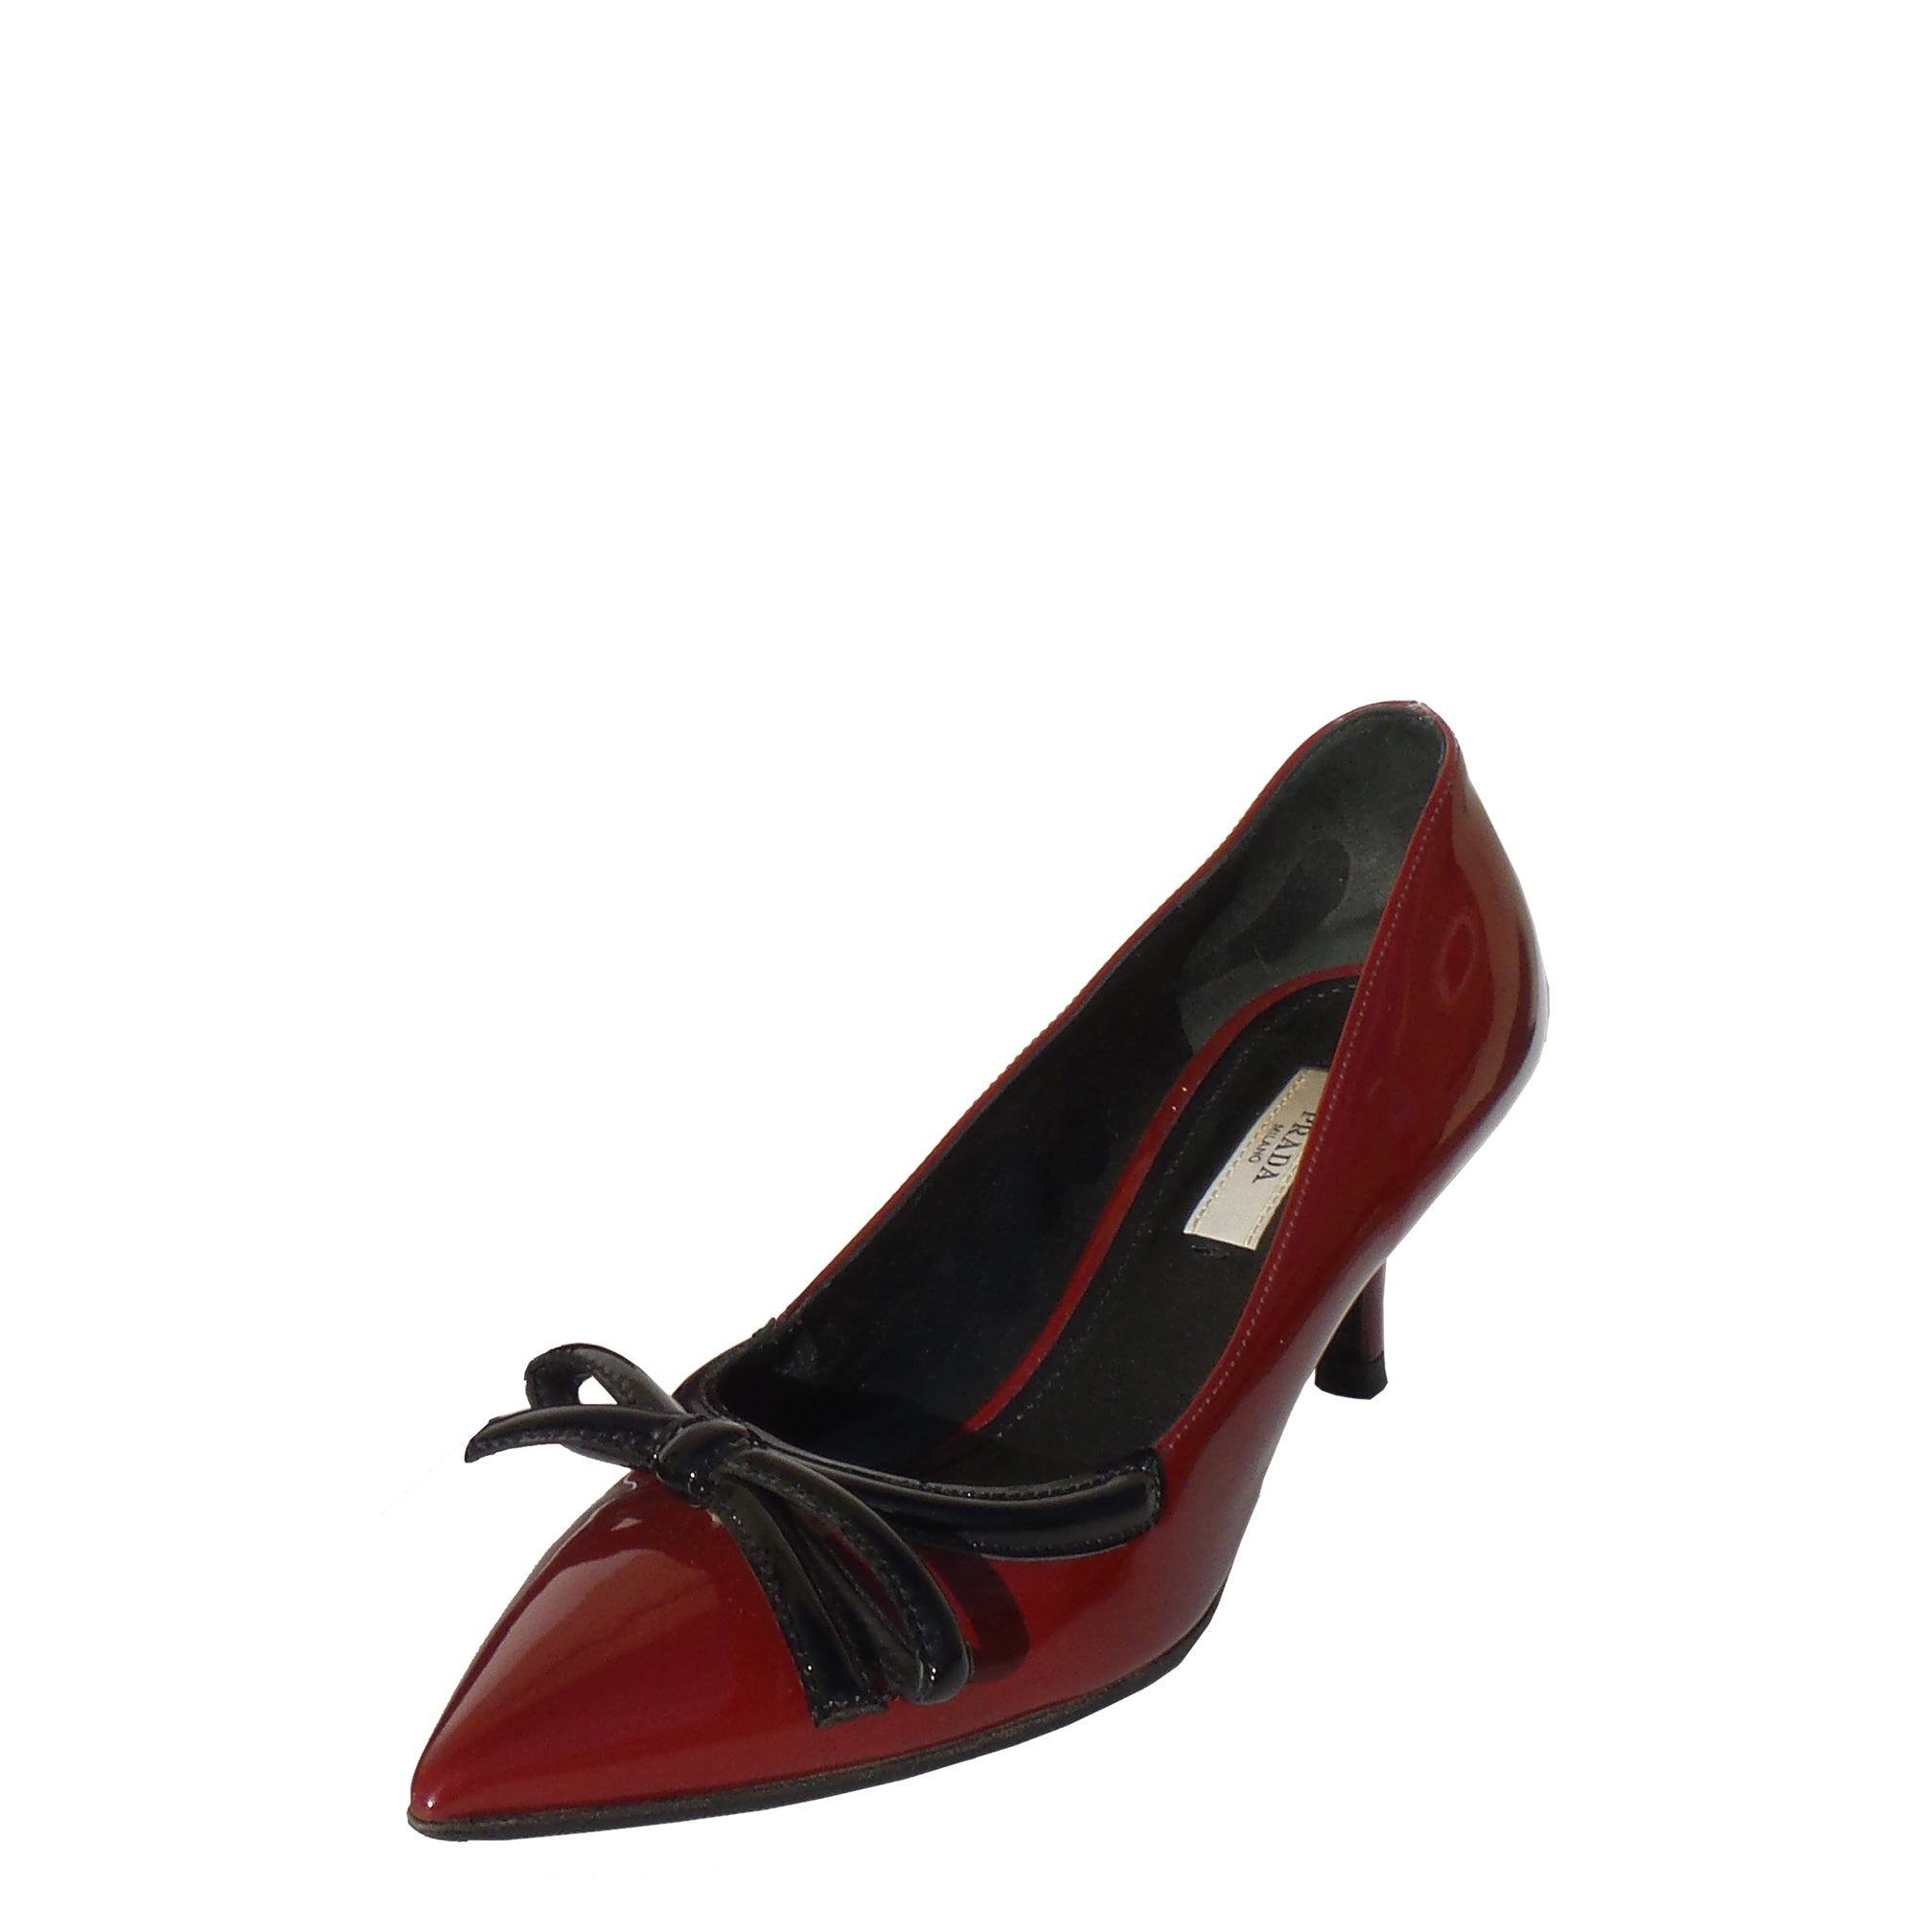 PRADA Burgundy Red Patent Leather Black Bow Pointed Toe Kitten Heel Pumps 36 GC